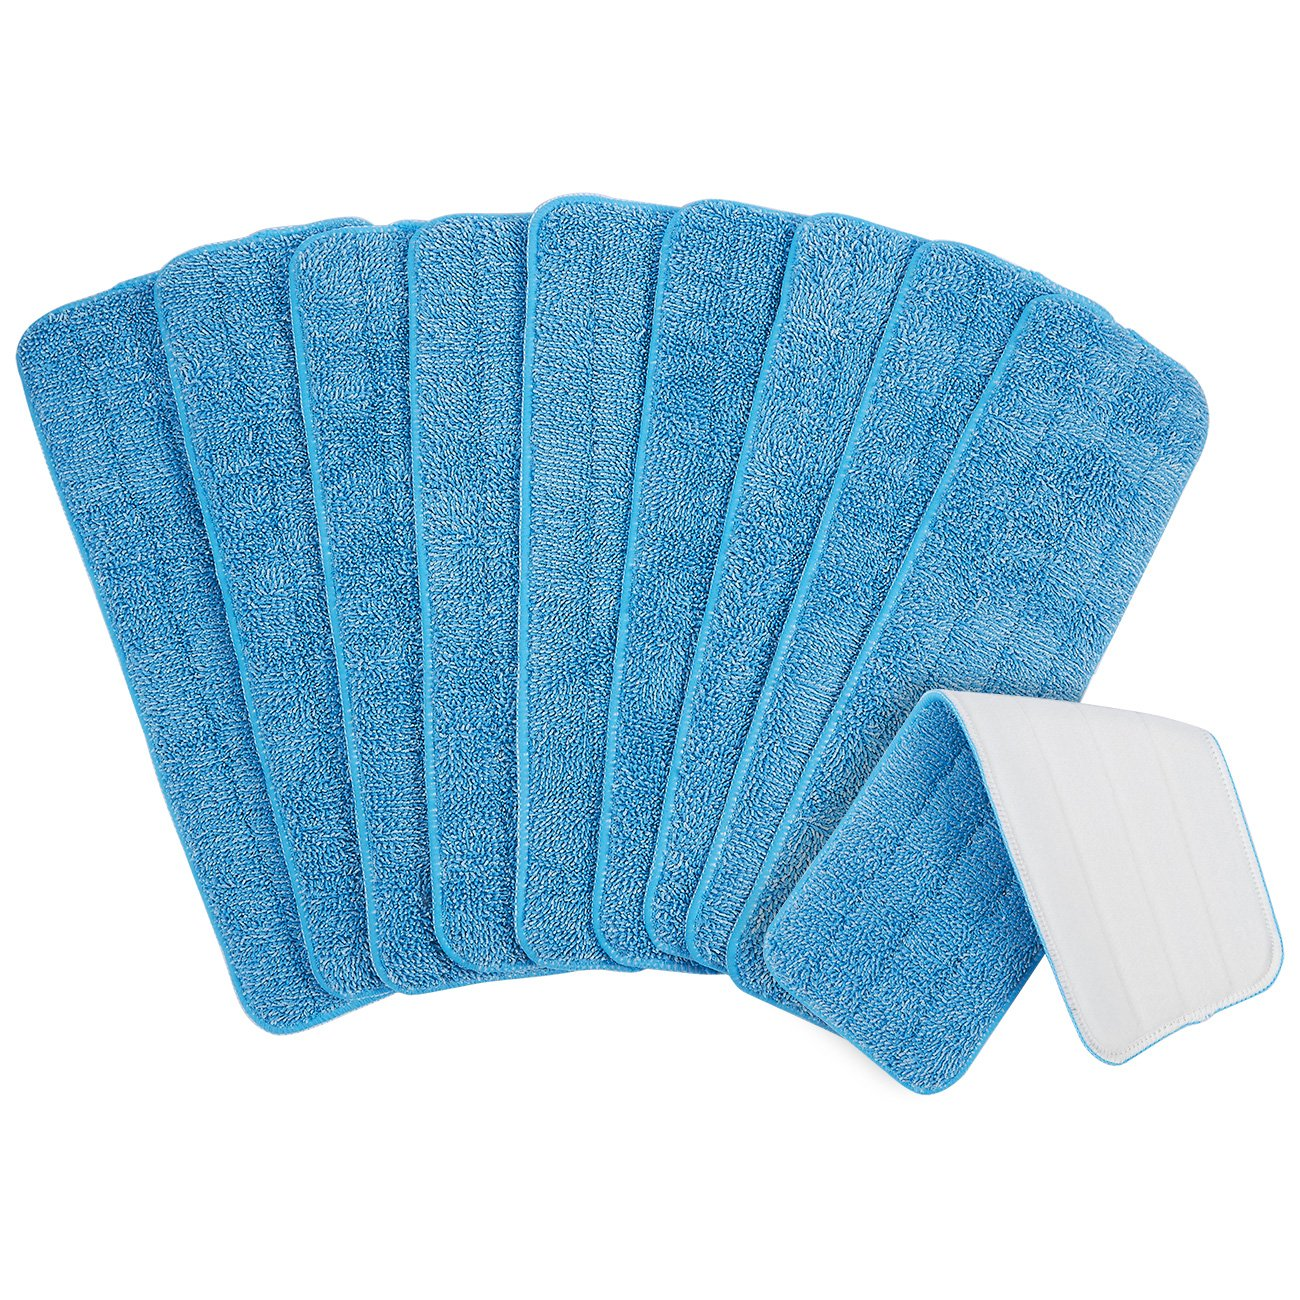 Pack of 10 Microfiber Mop Pads - Reusable Floor Mop Pads - Suitable for Hook and Loop Mop Heads, 16.5 x 0.25 x 5.38 Inches, Blue Juvale